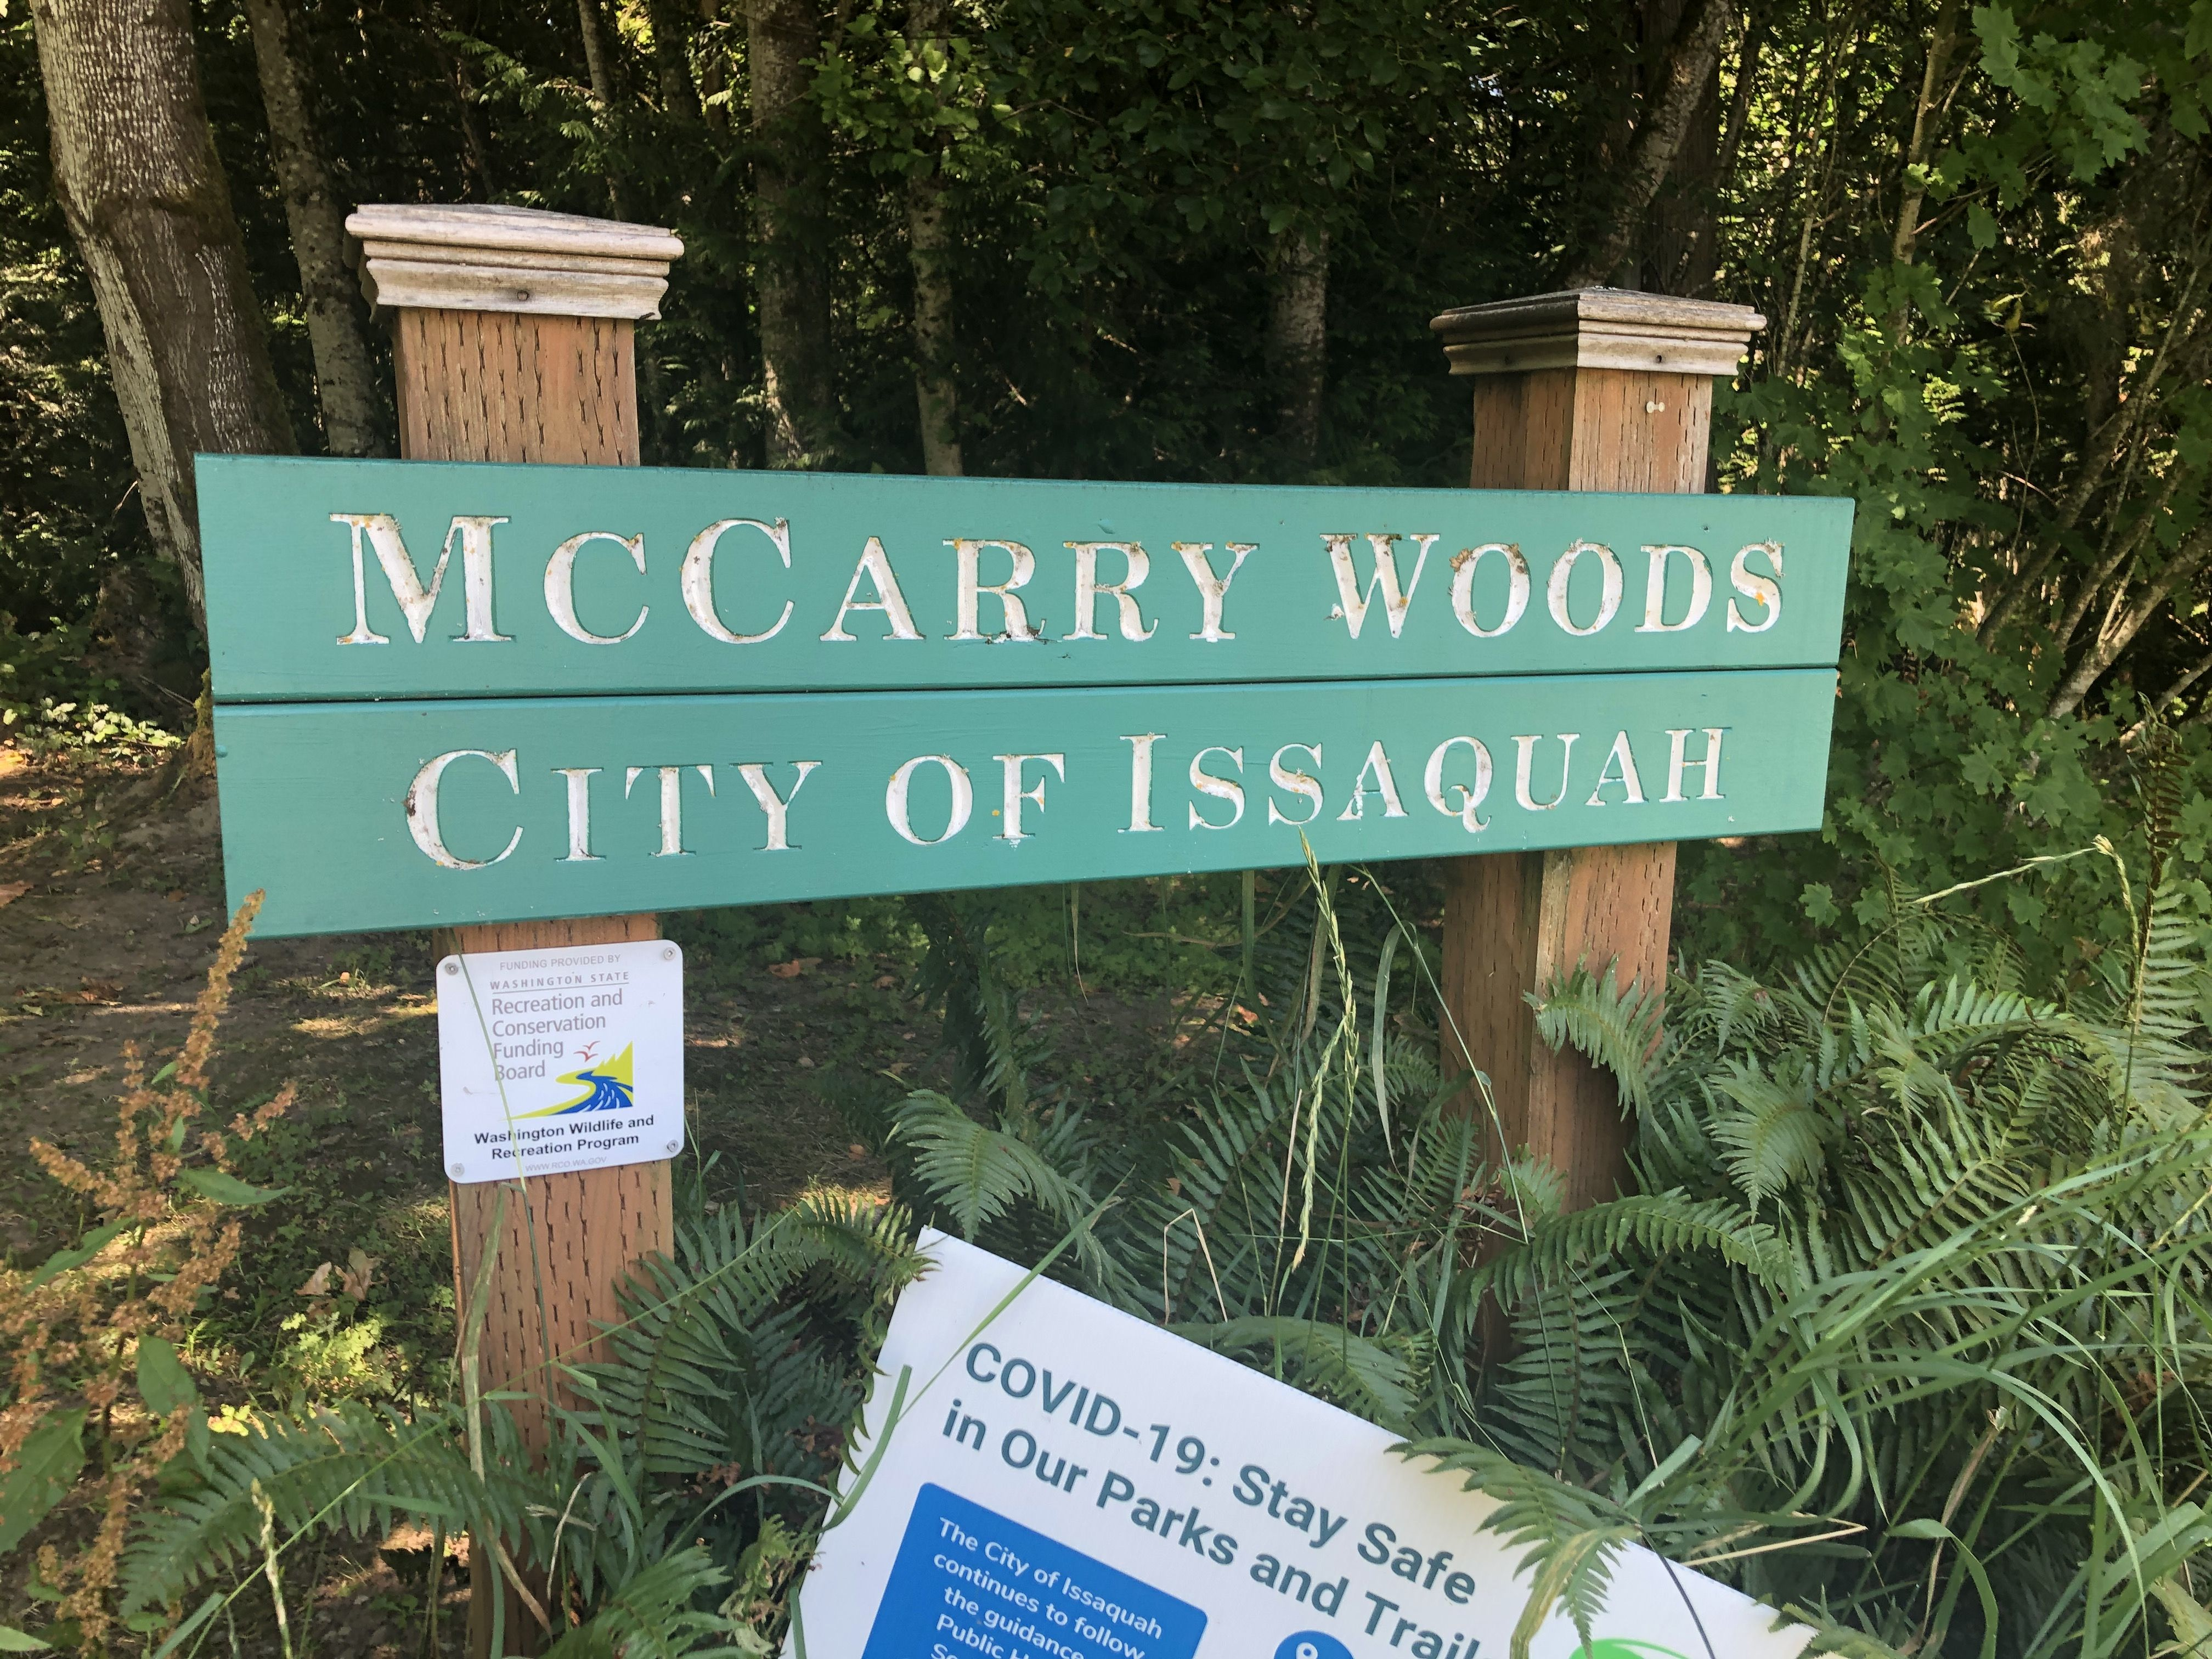 Pin By Tracie Hall On Hikes Highway Signs Issaquah City